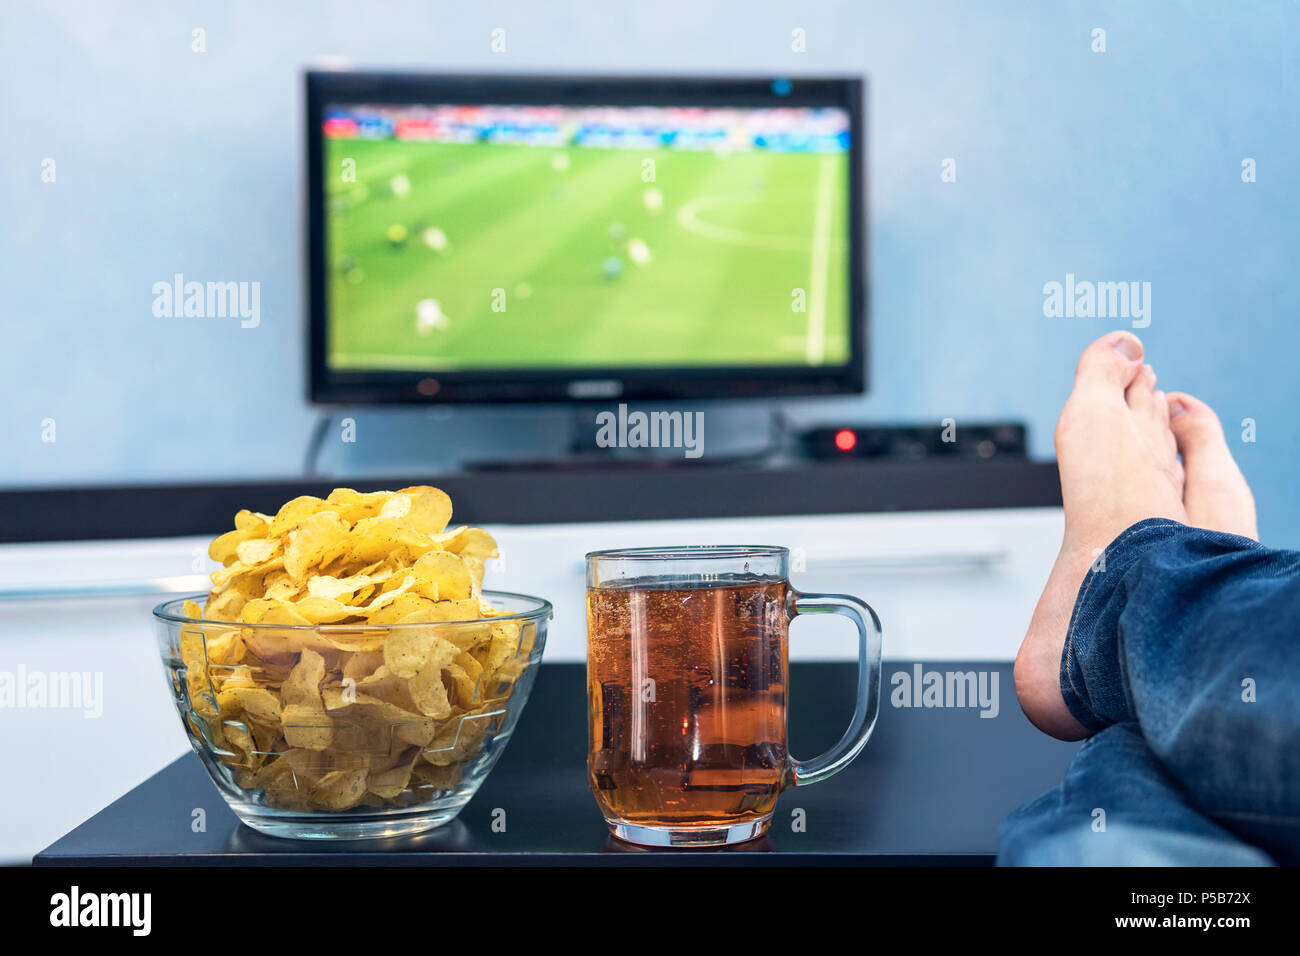 Wonderbaarlijk TV, television watching football match on TV with snacks and GO-72